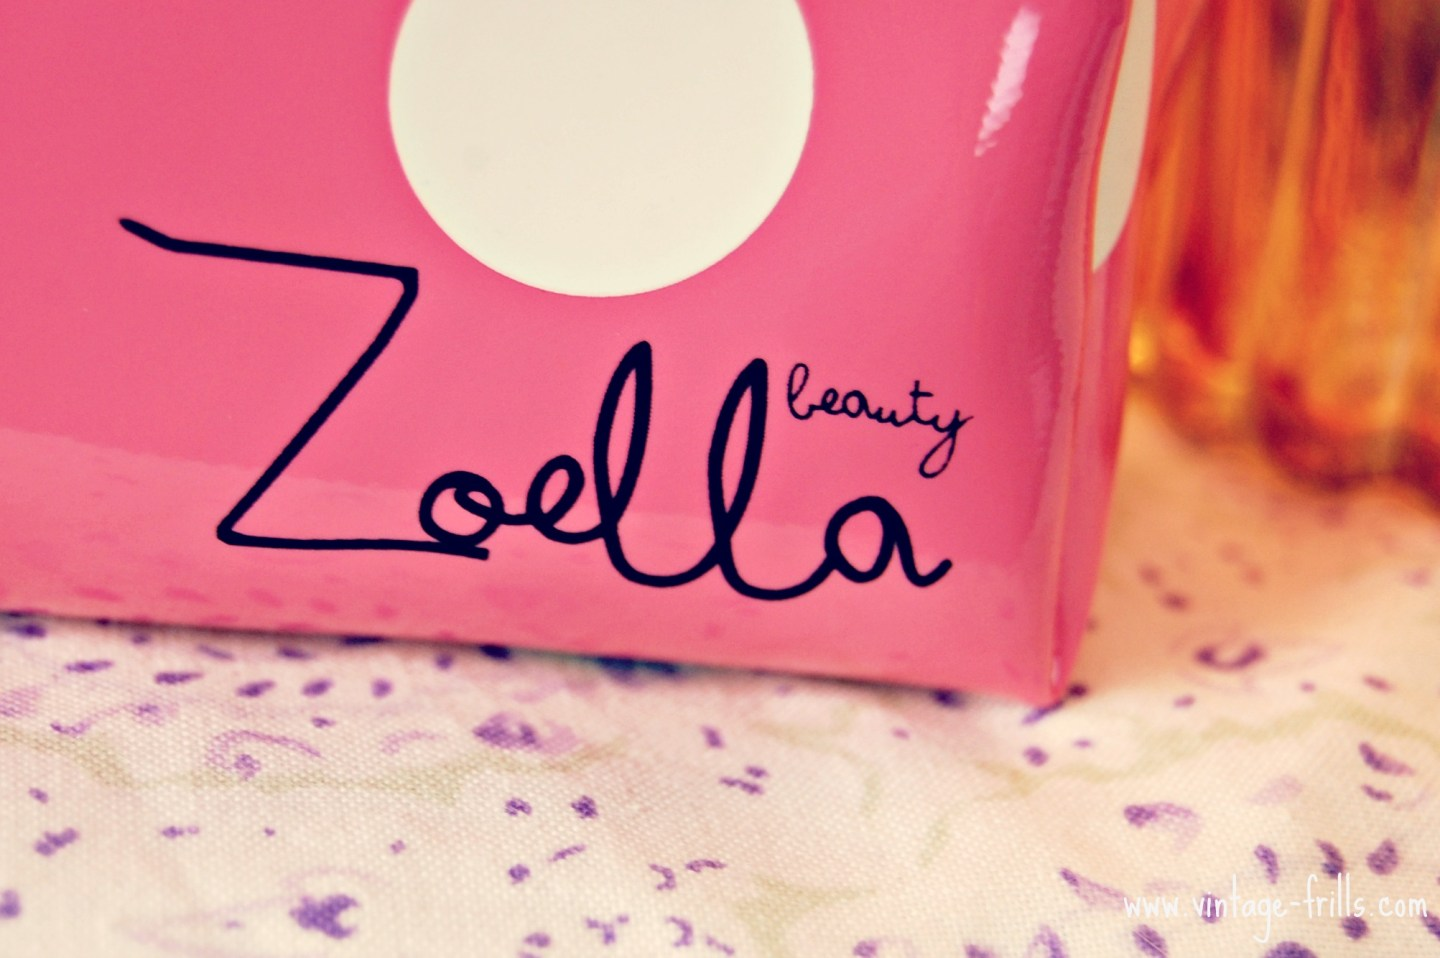 Zoella, Zoella Beauty, Zoella Make-up bag, Guinea Pig, Pink